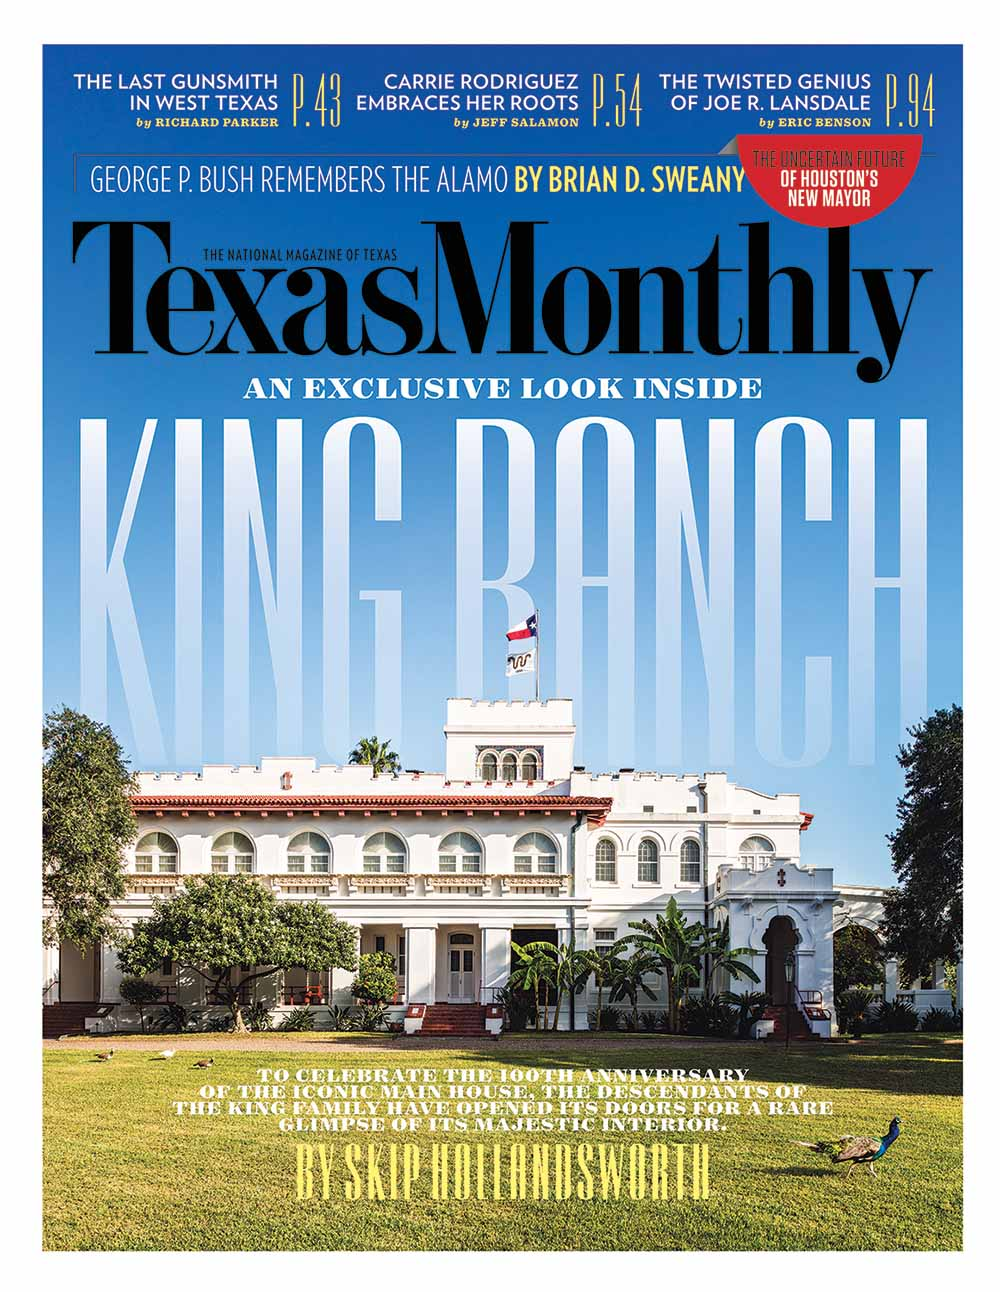 TEXAS MONTHLY, FEBRUARY 2016